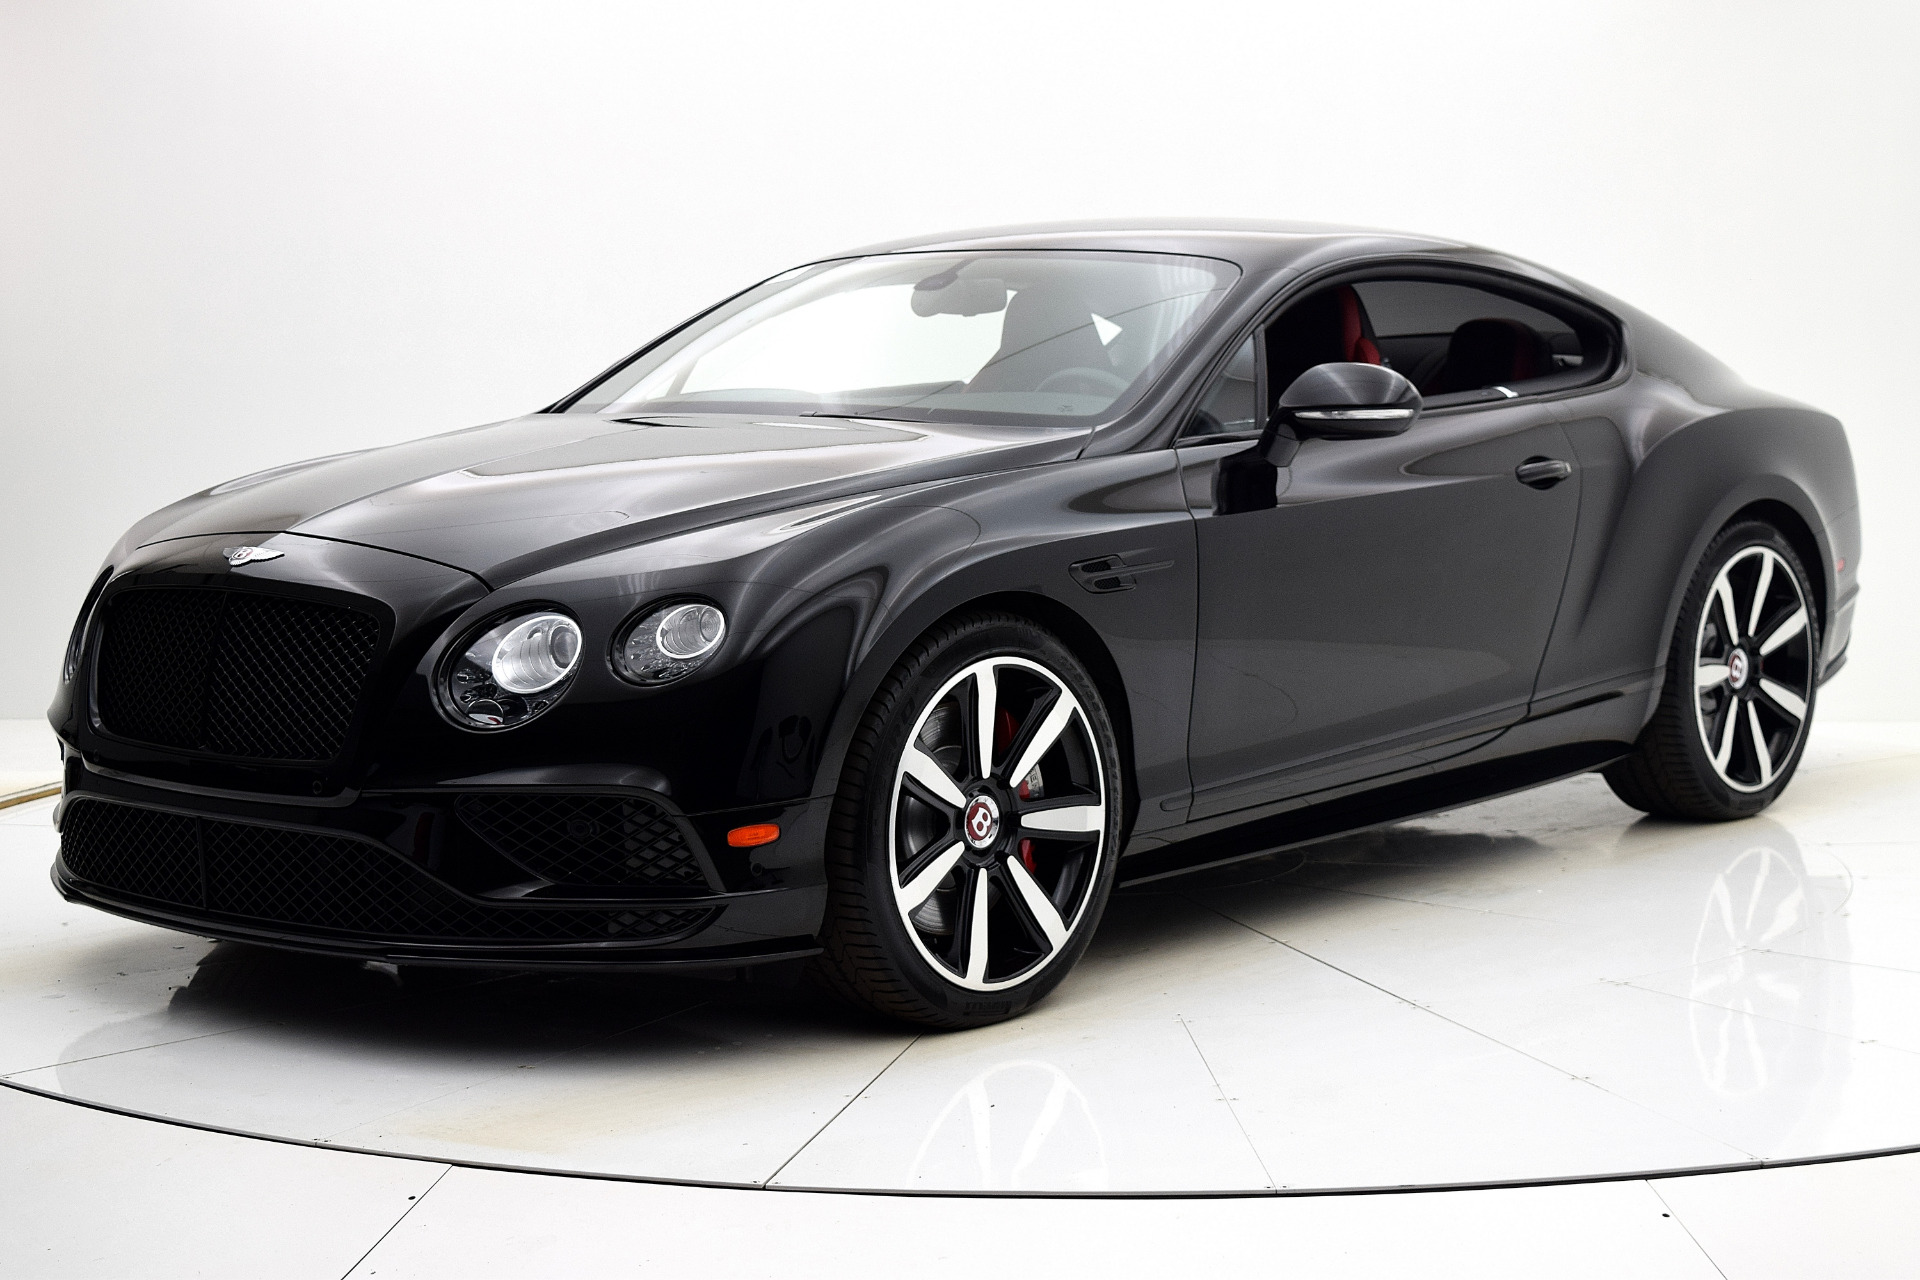 Bentley Continental GT 2016 For Sale $159880 Stock Number 1512JI